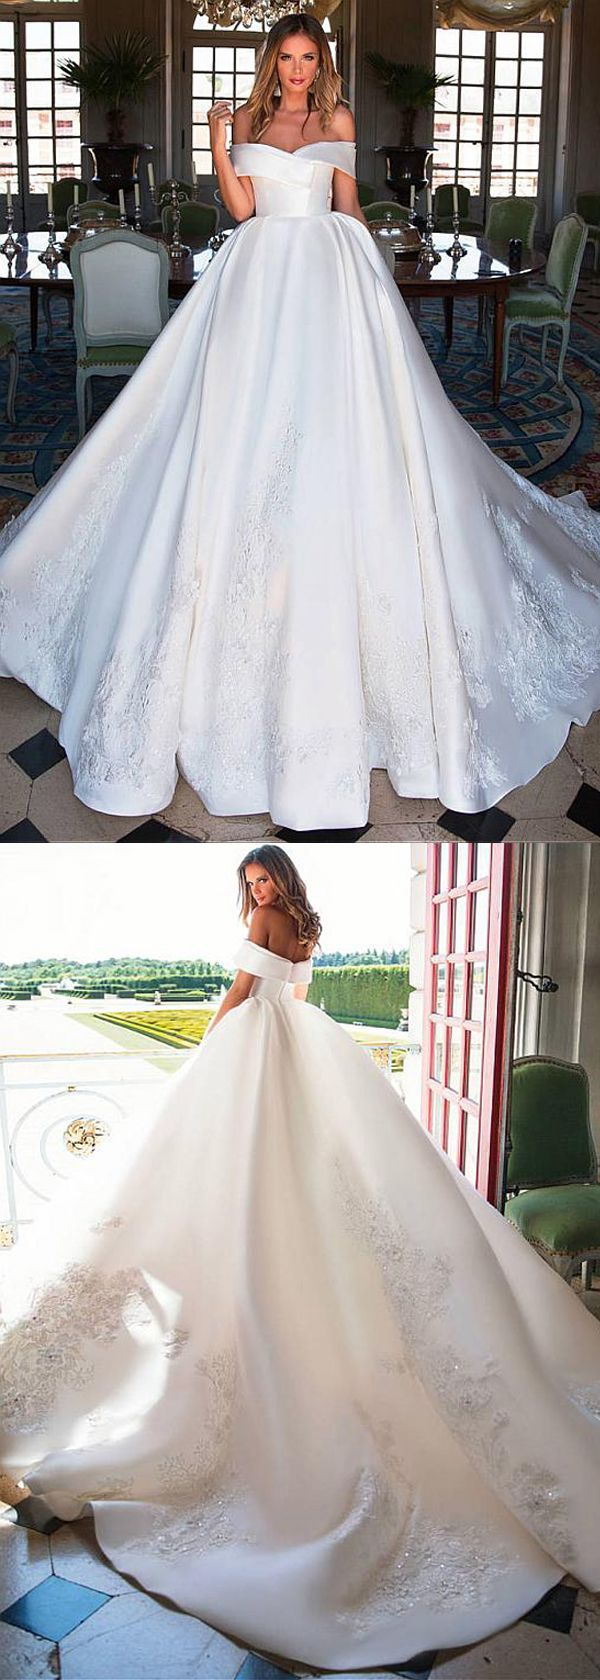 Photo of Wedding Dresses Ball Gown, Fascinating Satin Off-the-shoulder Neckline Ball Gown Wedding Dress With Lace Appliques & 3D Flowers & Beadings